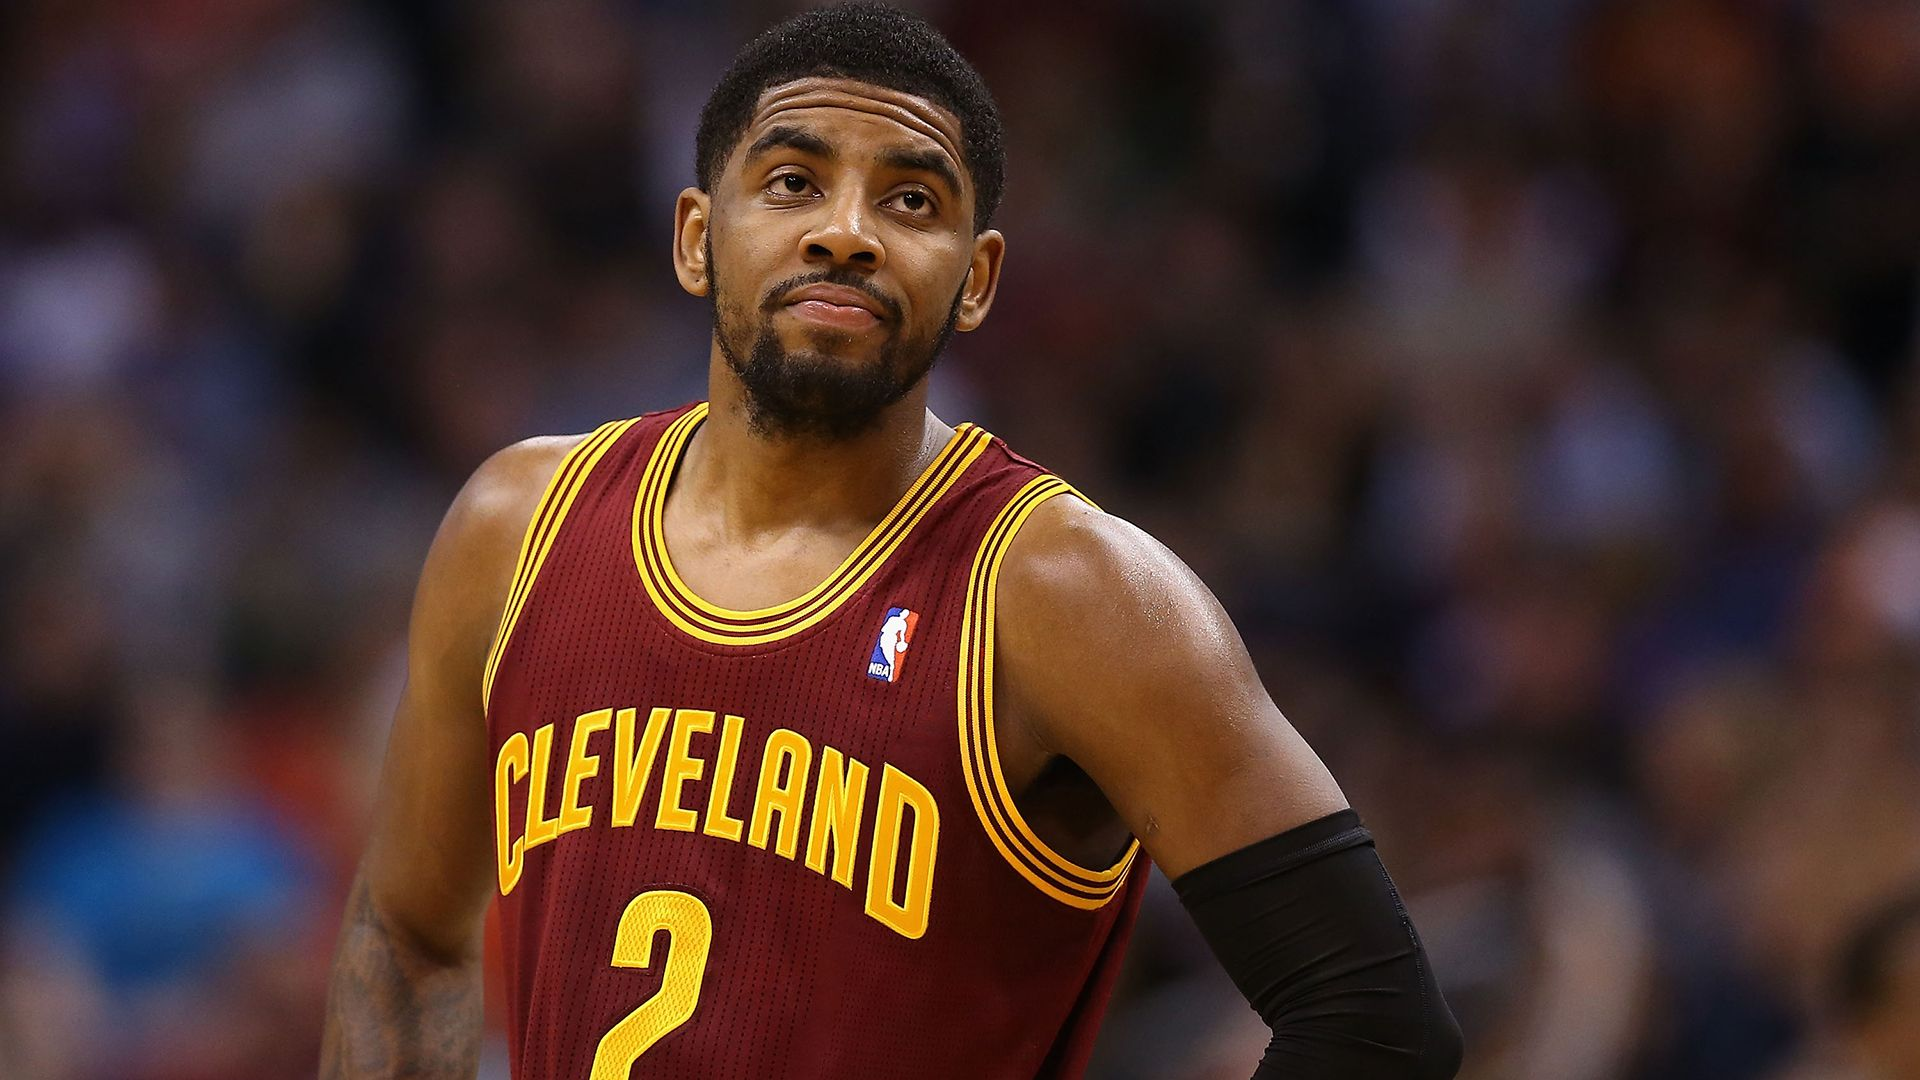 Kyrie Irving Phone number, Email Id, Fanmail, Instagram, Tiktok, and Contact Details